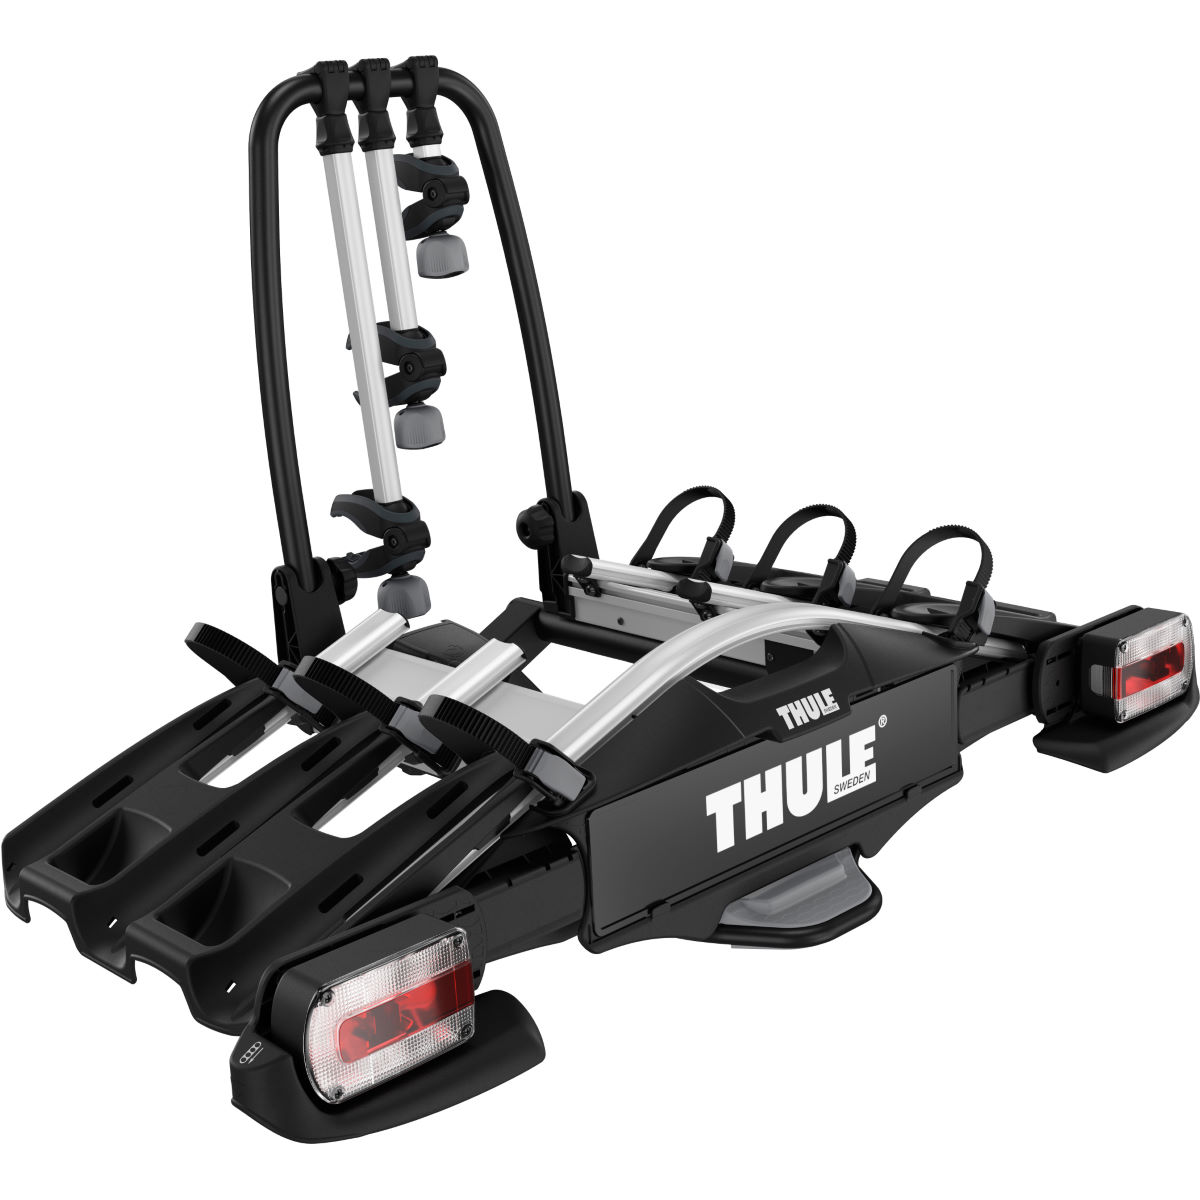 Thule Velocompact 927 - (3 bicicletas)